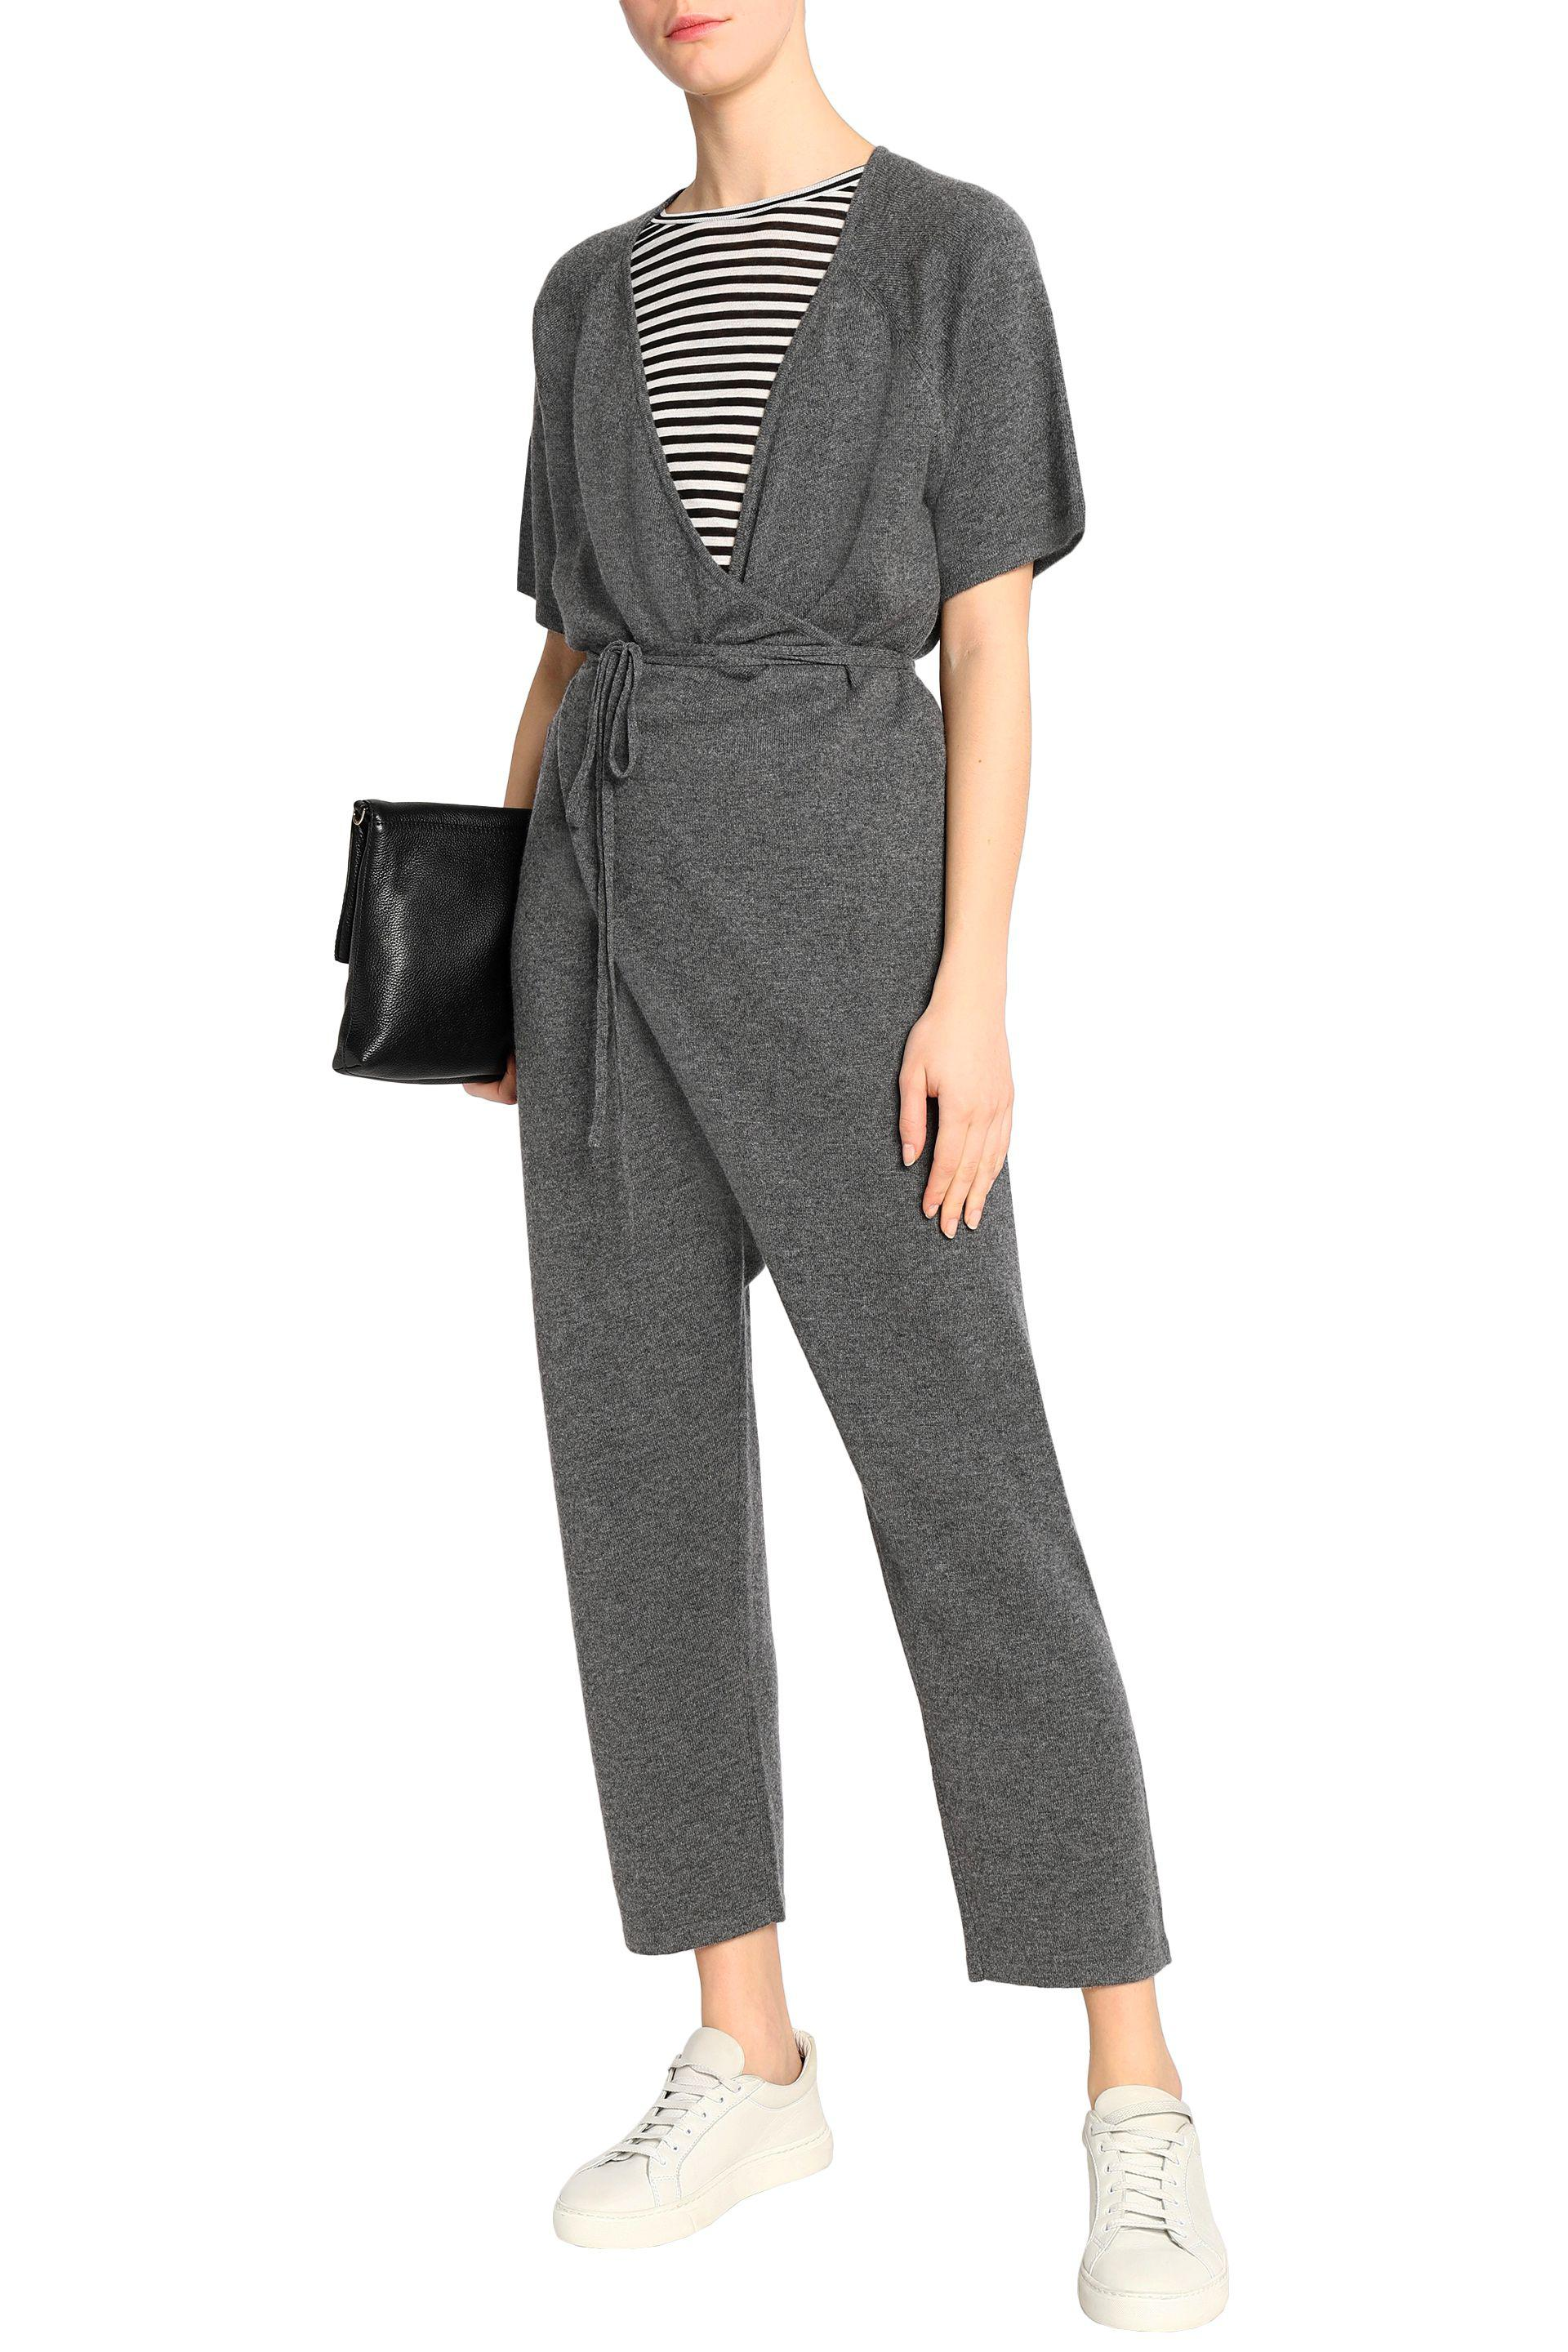 42064e8af8b5 Madeleine Thompson Wrap-effect Wool And Cashmere-blend Jumpsuit in ...